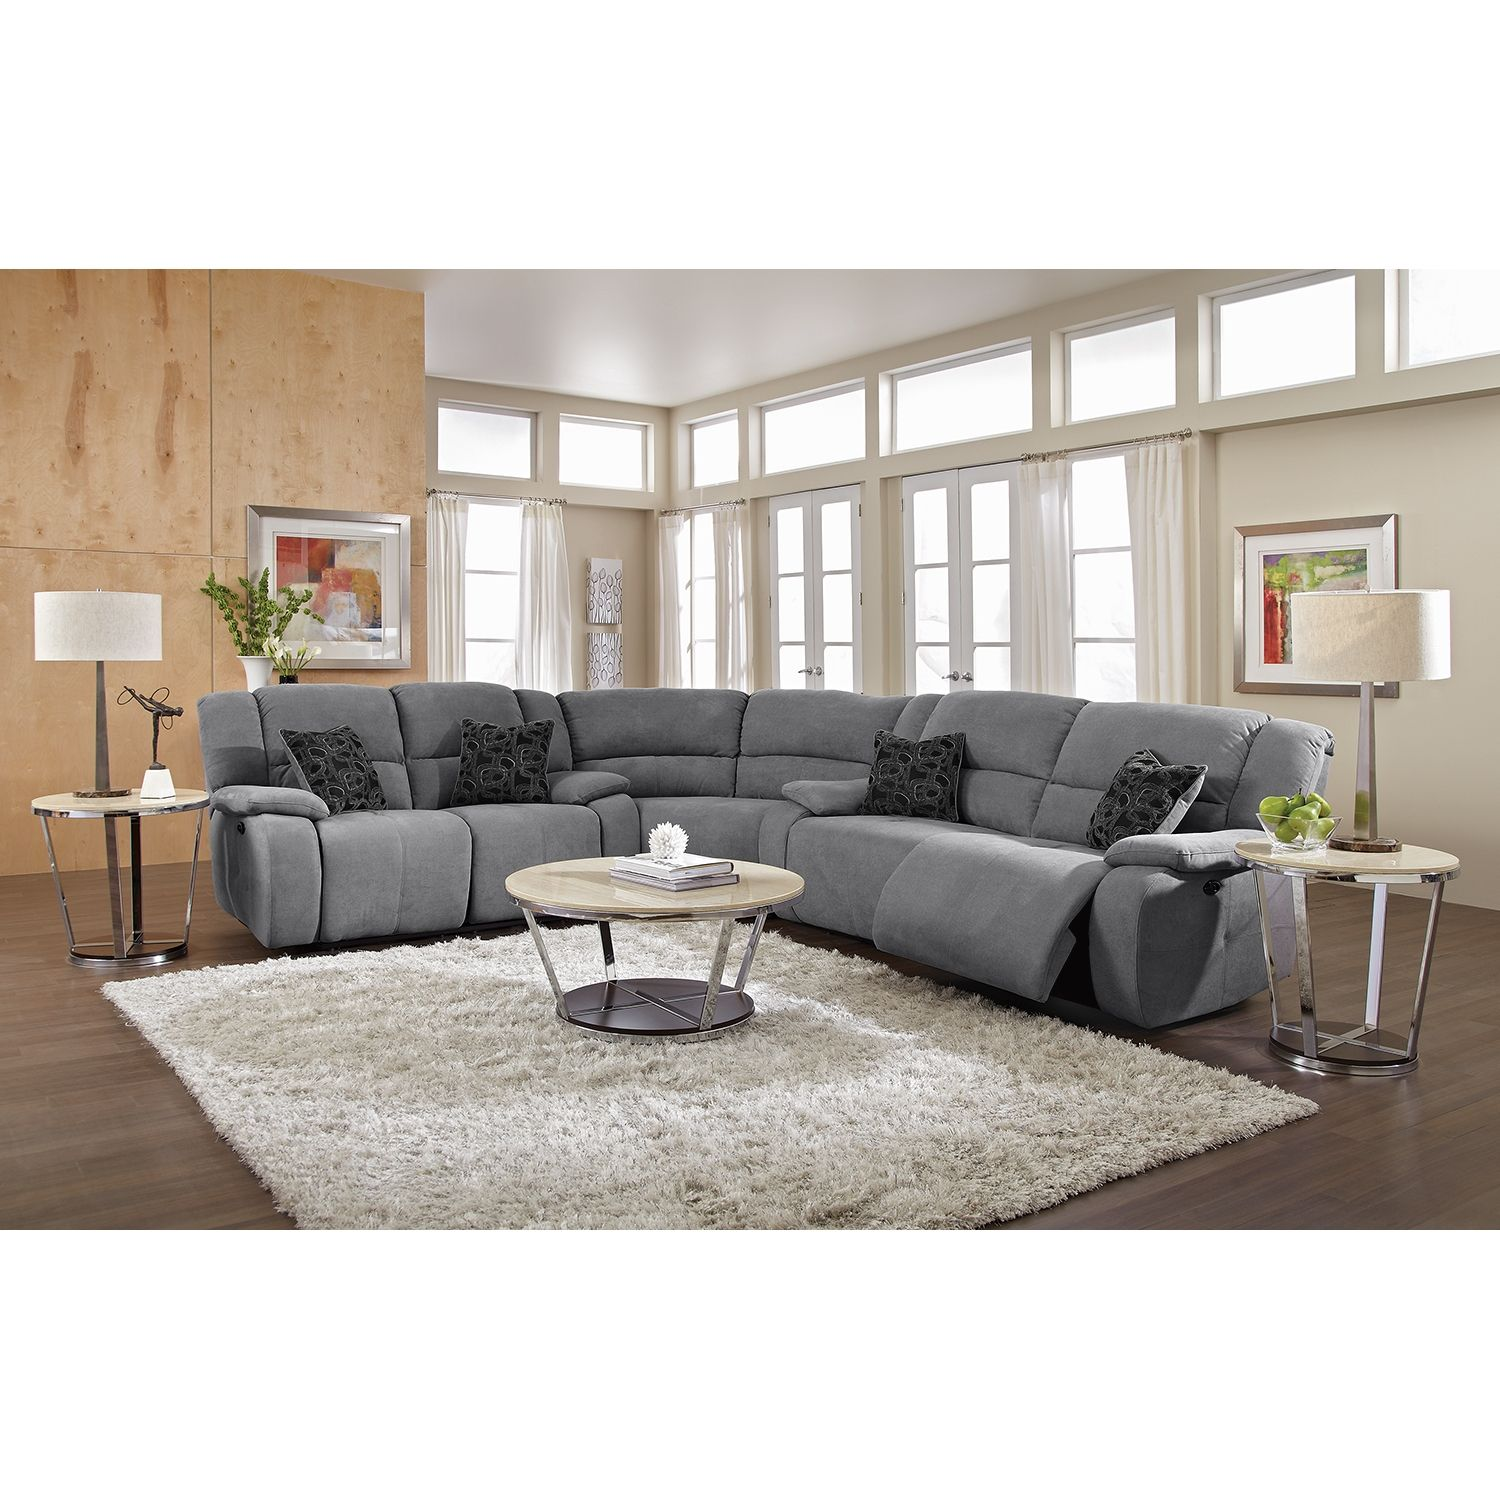 Reclining sectional sofa with massage and heat appealing living reclining sectional sofa with massage and heat appealing living room furniture sets on sale great sectional parisarafo Gallery